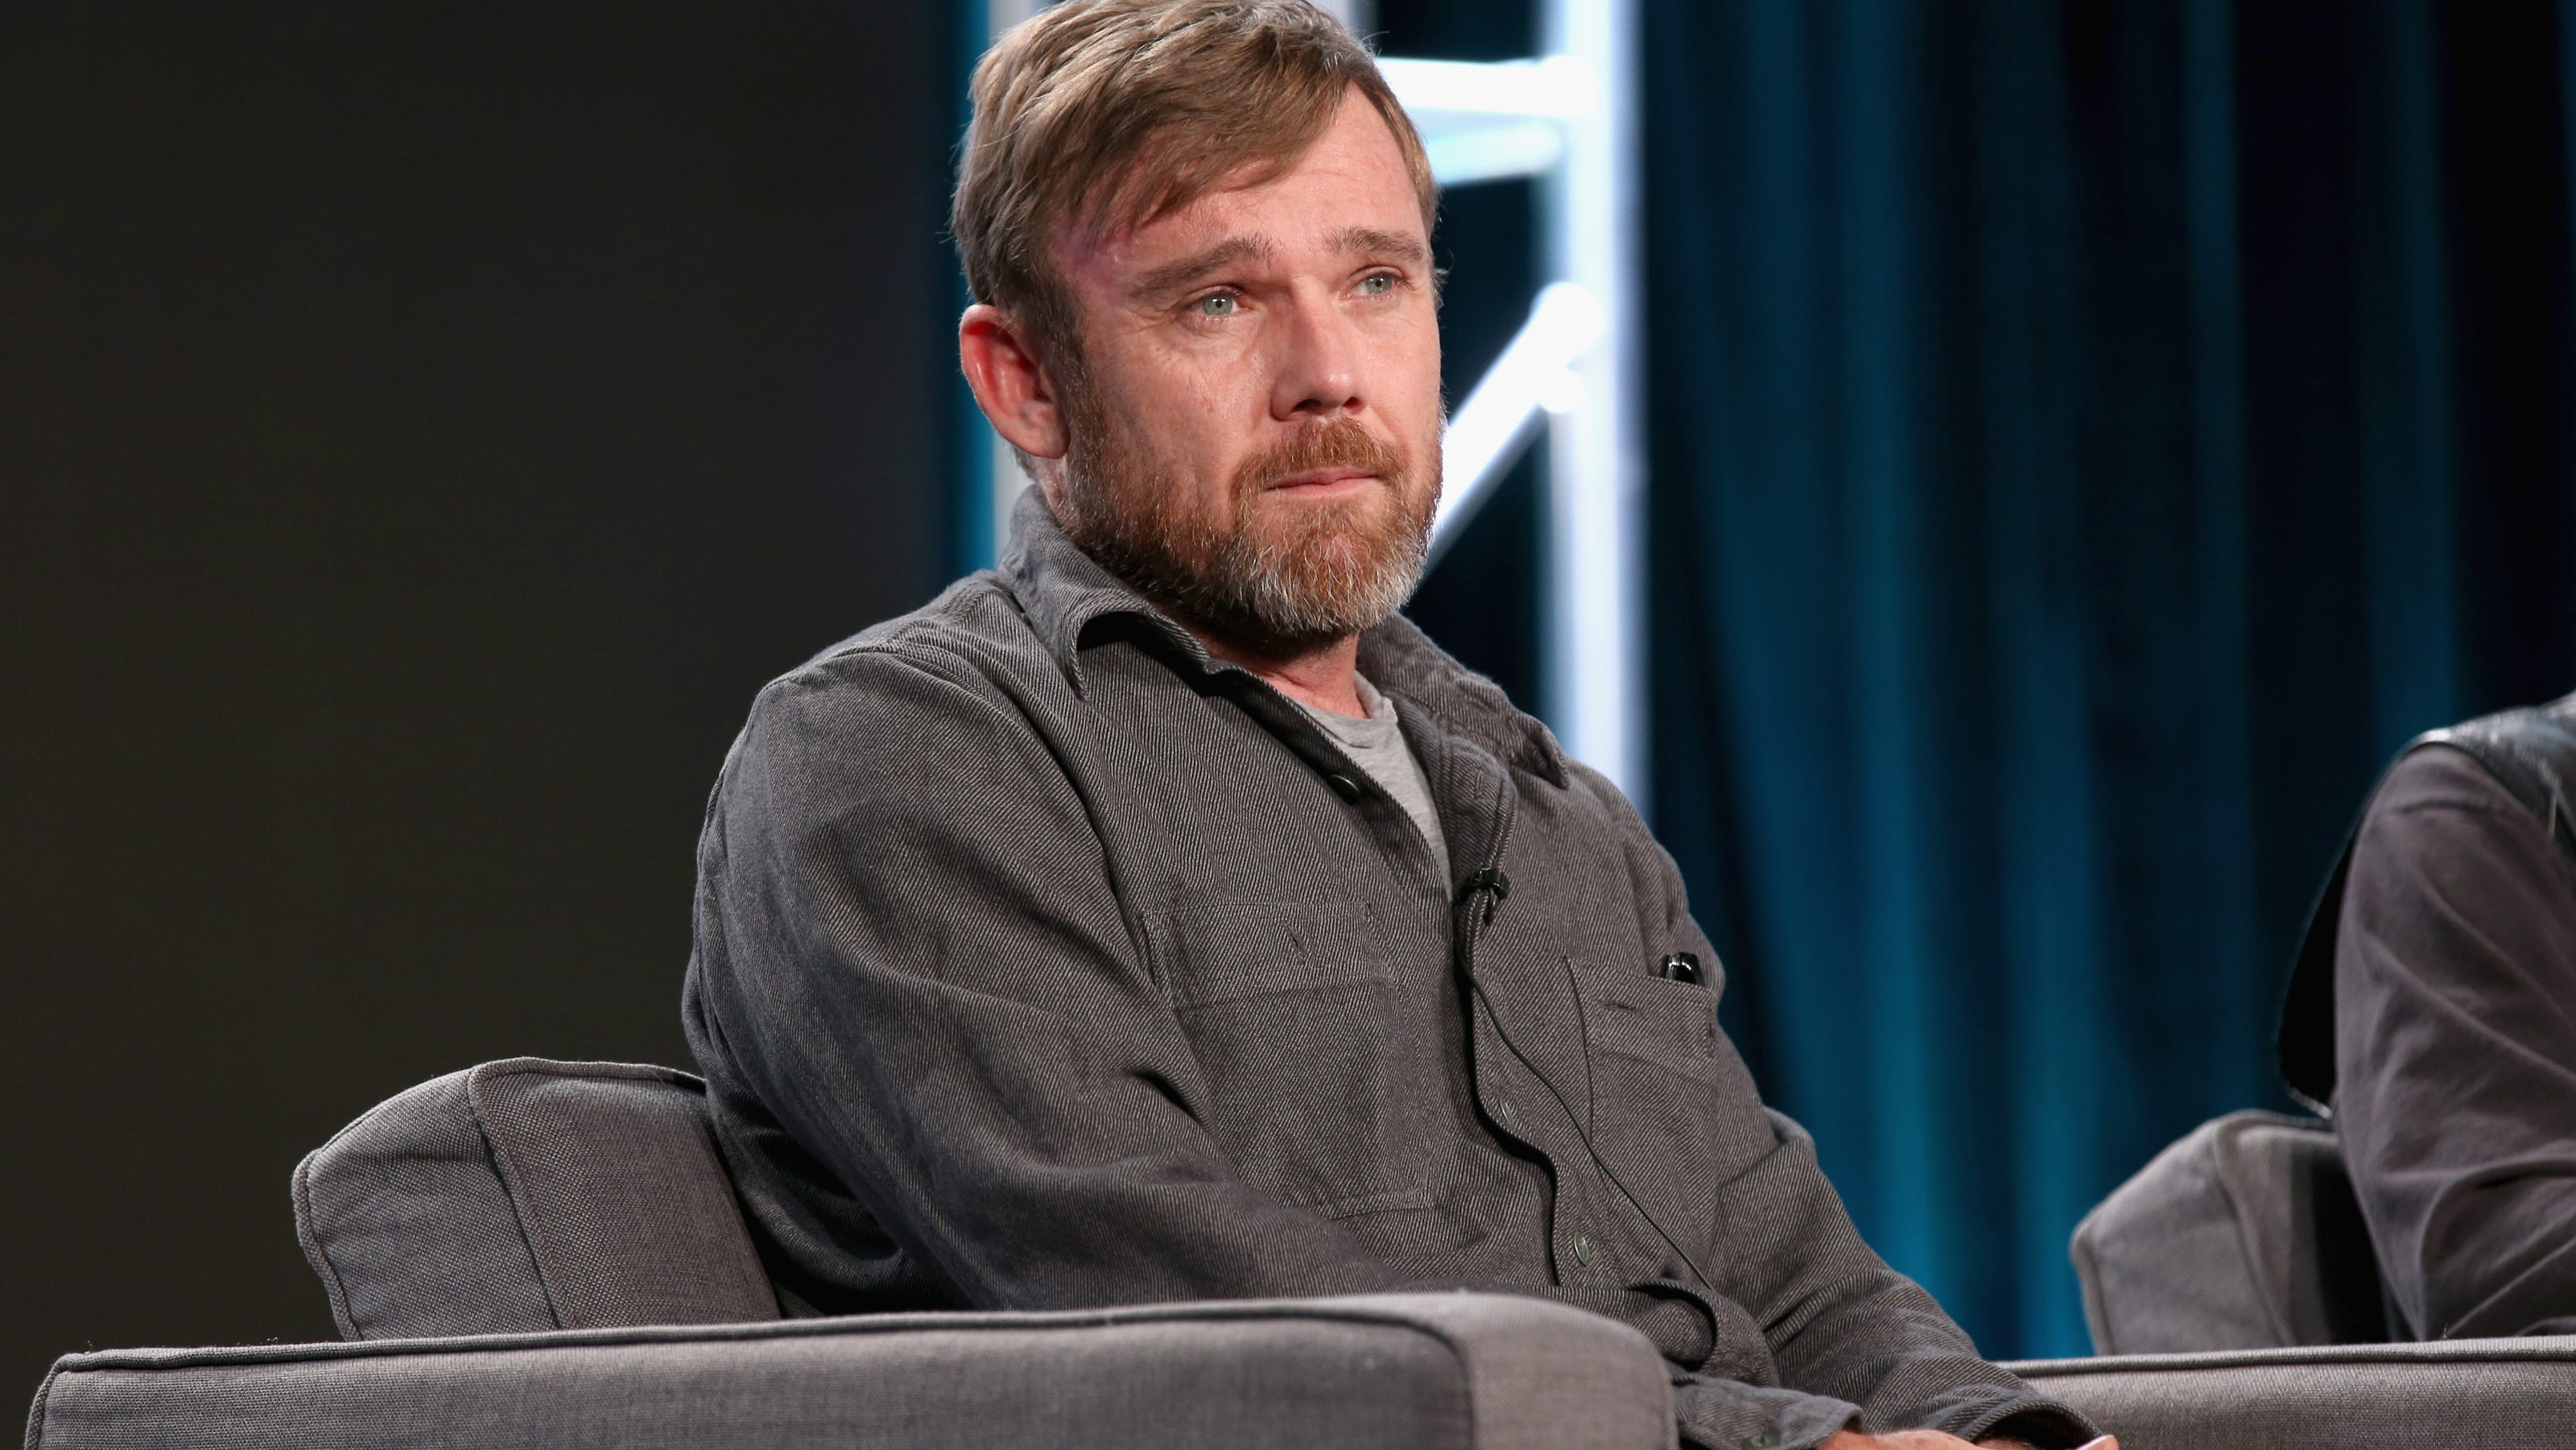 'You're gonna listen to these people?': Ricky Schroder films himself confrontingCostco employee over mask policy